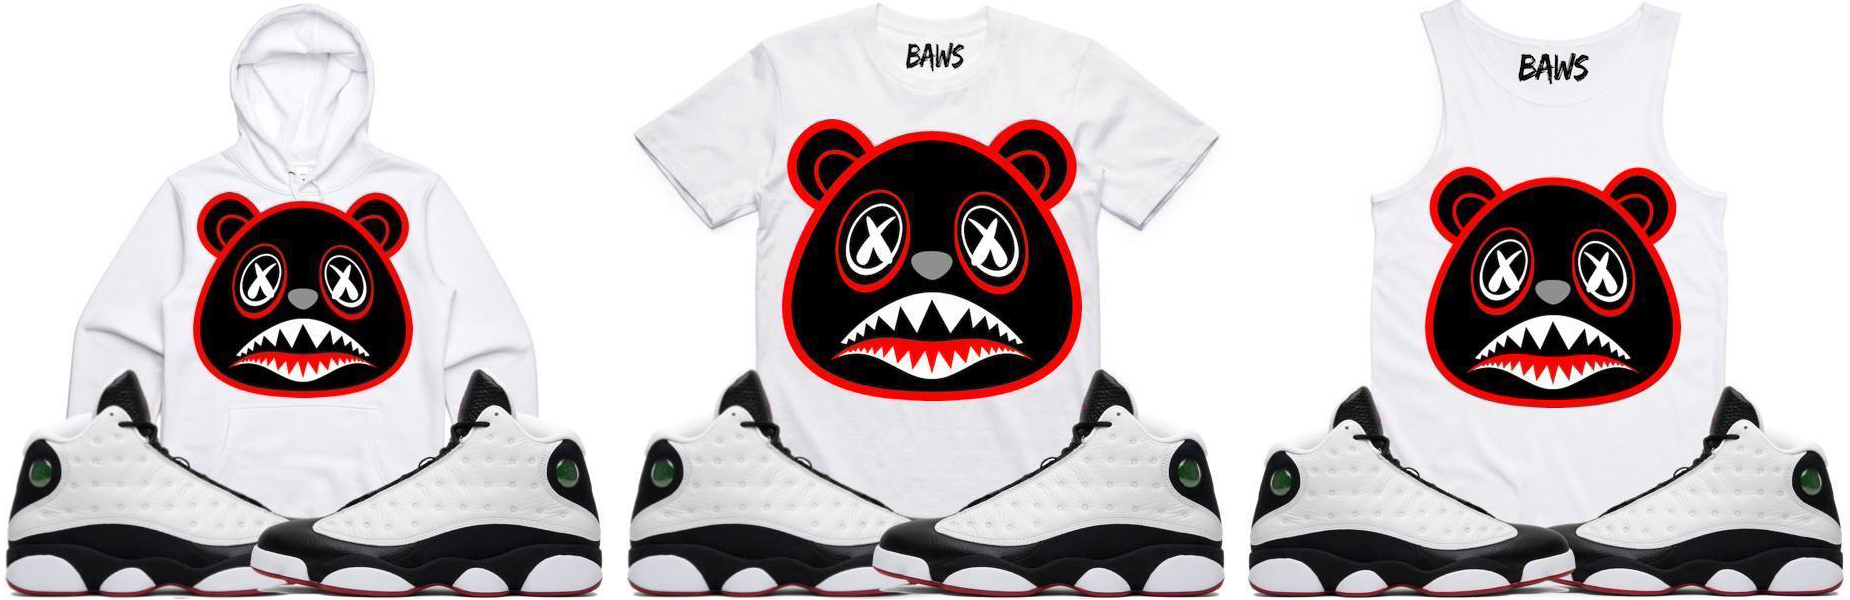 jordan-13-sneaker-clothing-match-baws